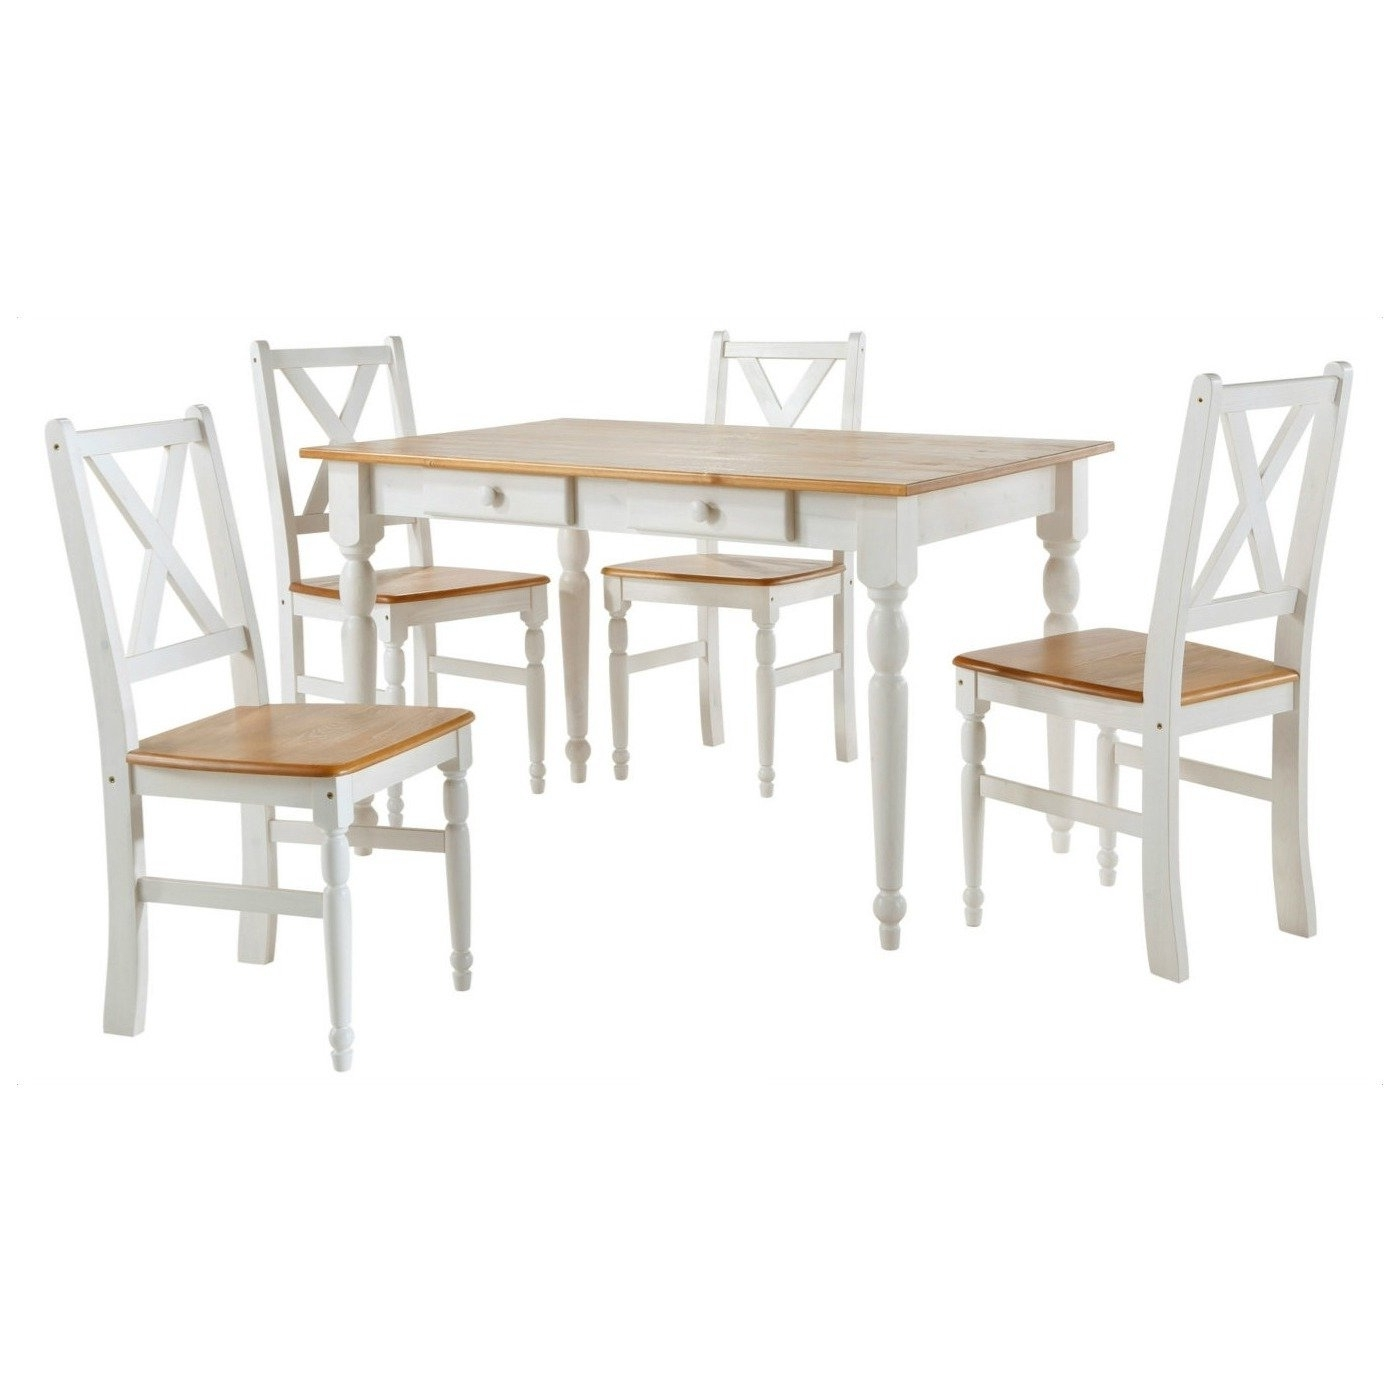 Noah Dining Tables For Newest Shop Scandinavian Lifestyle Noah Dining Table With Drawers – Free (View 6 of 25)